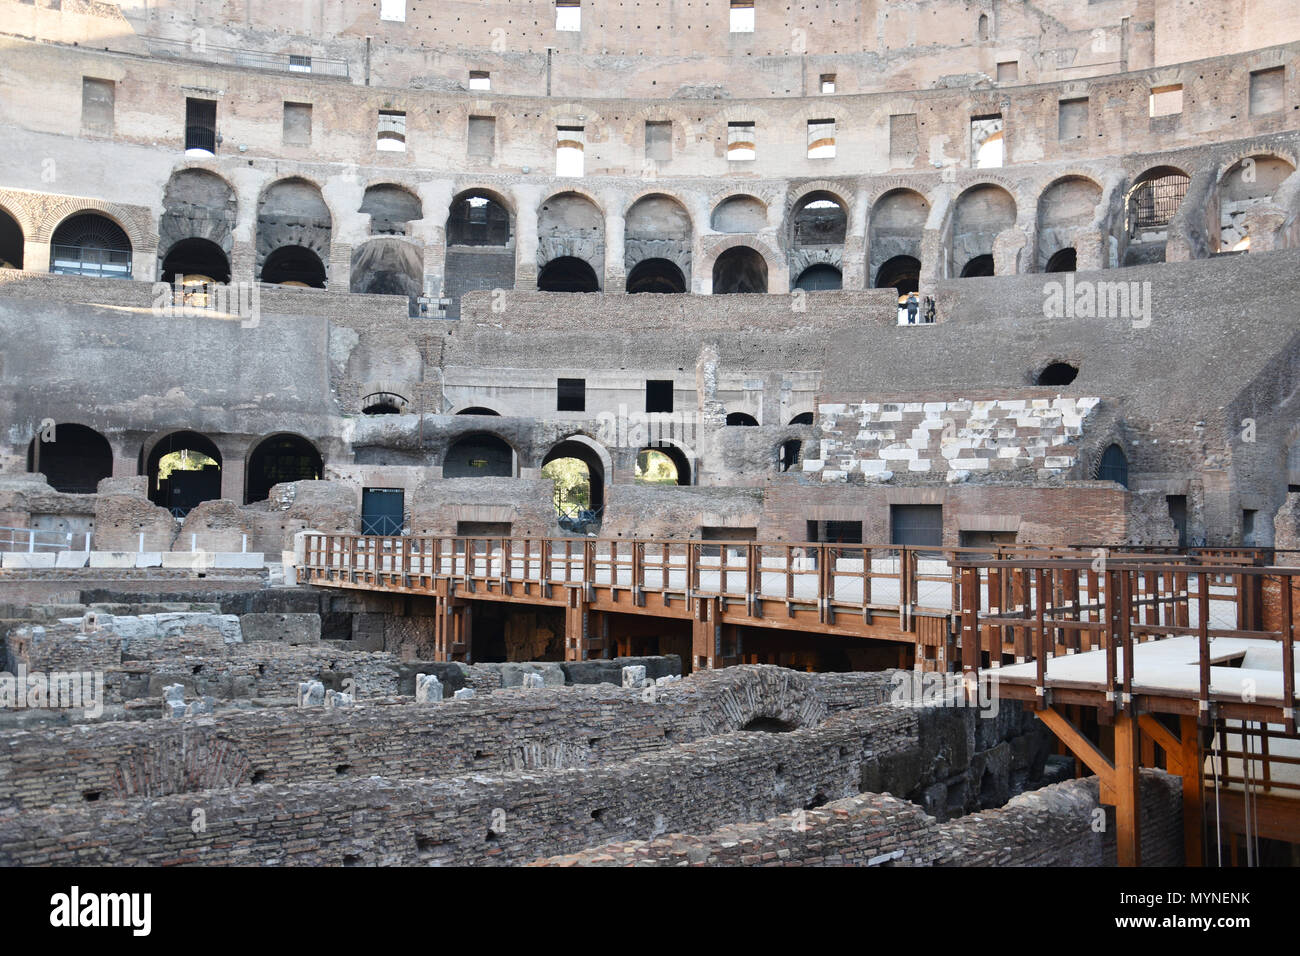 Interior view of stands and floor in the Colosseum (Coliseum) or Flavian Amphiteatre in the centre of Rome, Italy. Stock Photo